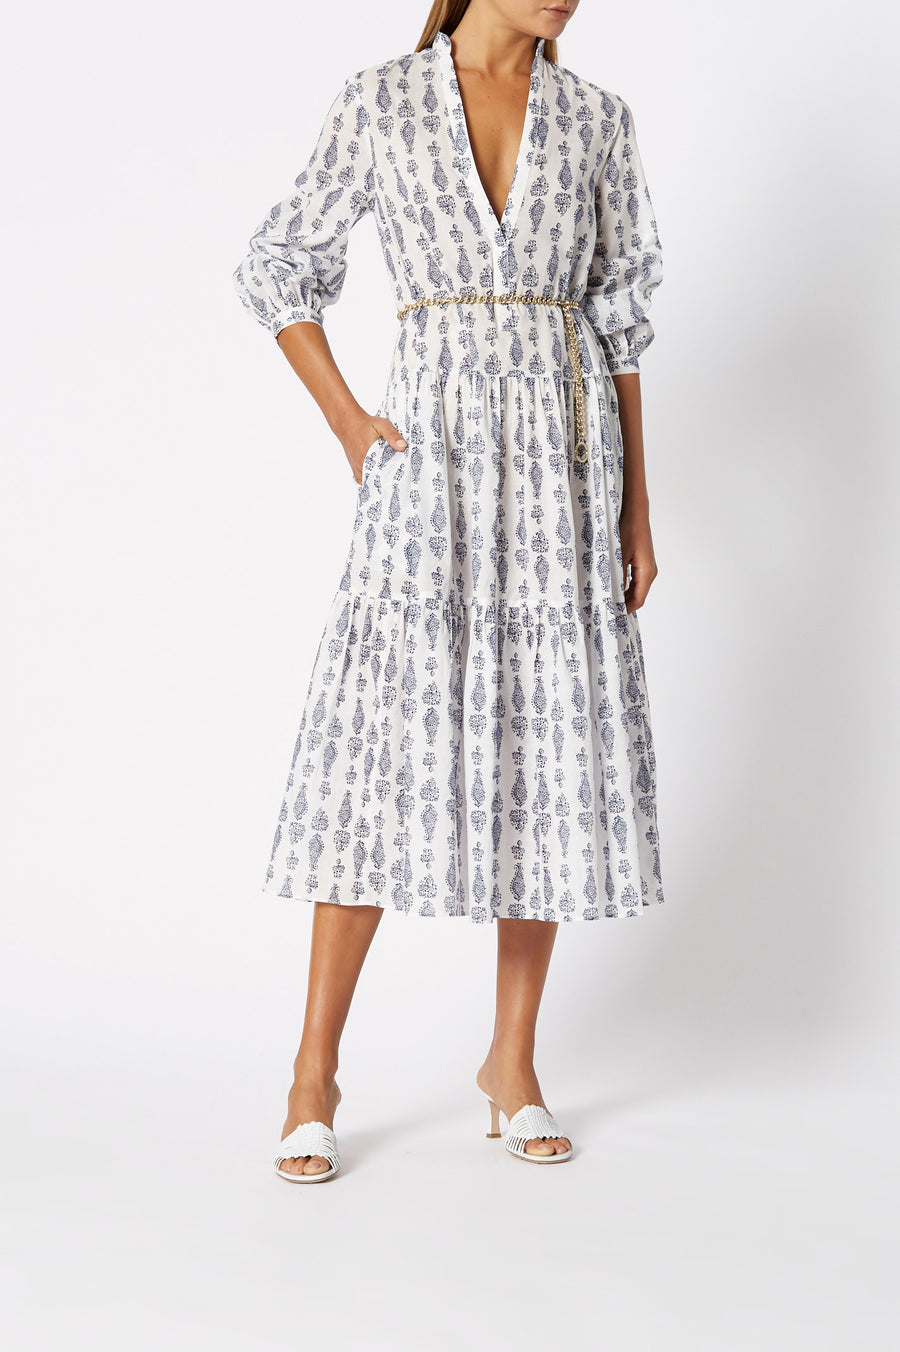 Cotton Paisley Dress White, ¾ Cuffed sleeves, Below the knee length